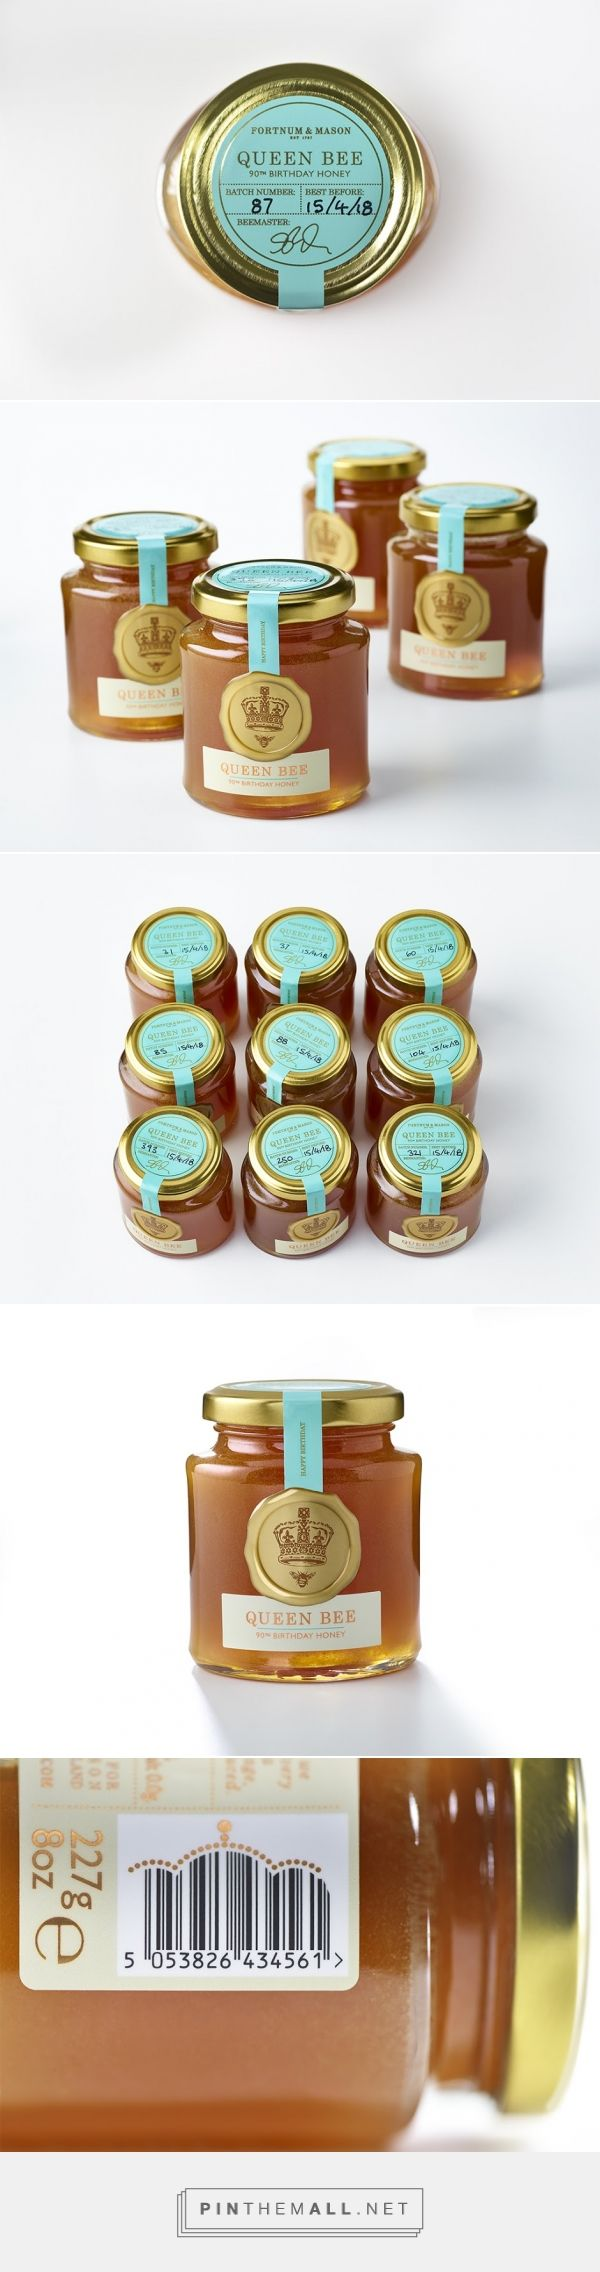 Honey Packaging that's fit for a Queen Bee - designed by DesignBridge (UK) - http://www.packagingoftheworld.com/2016/06/fortnum-mason-queen-bee-honey.html